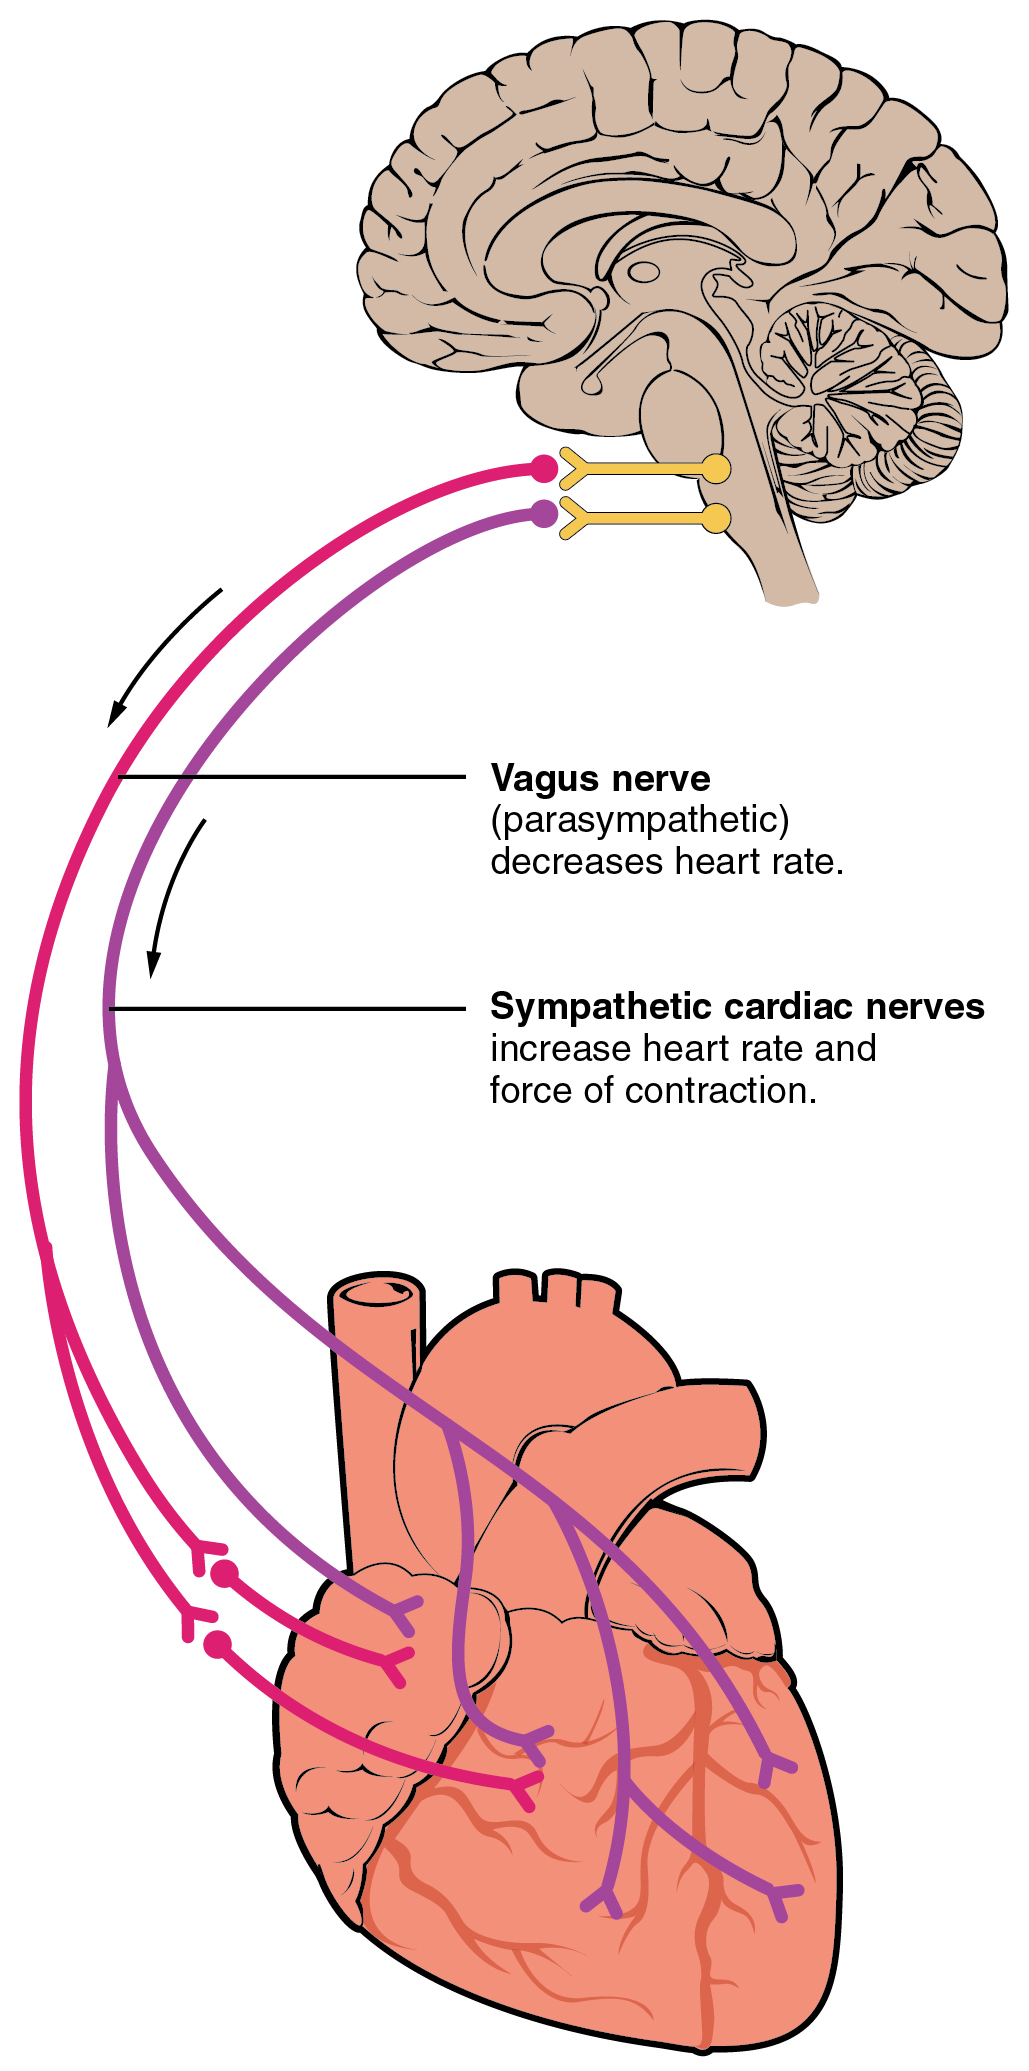 Autonomic innervation of the heart, from Openstax College